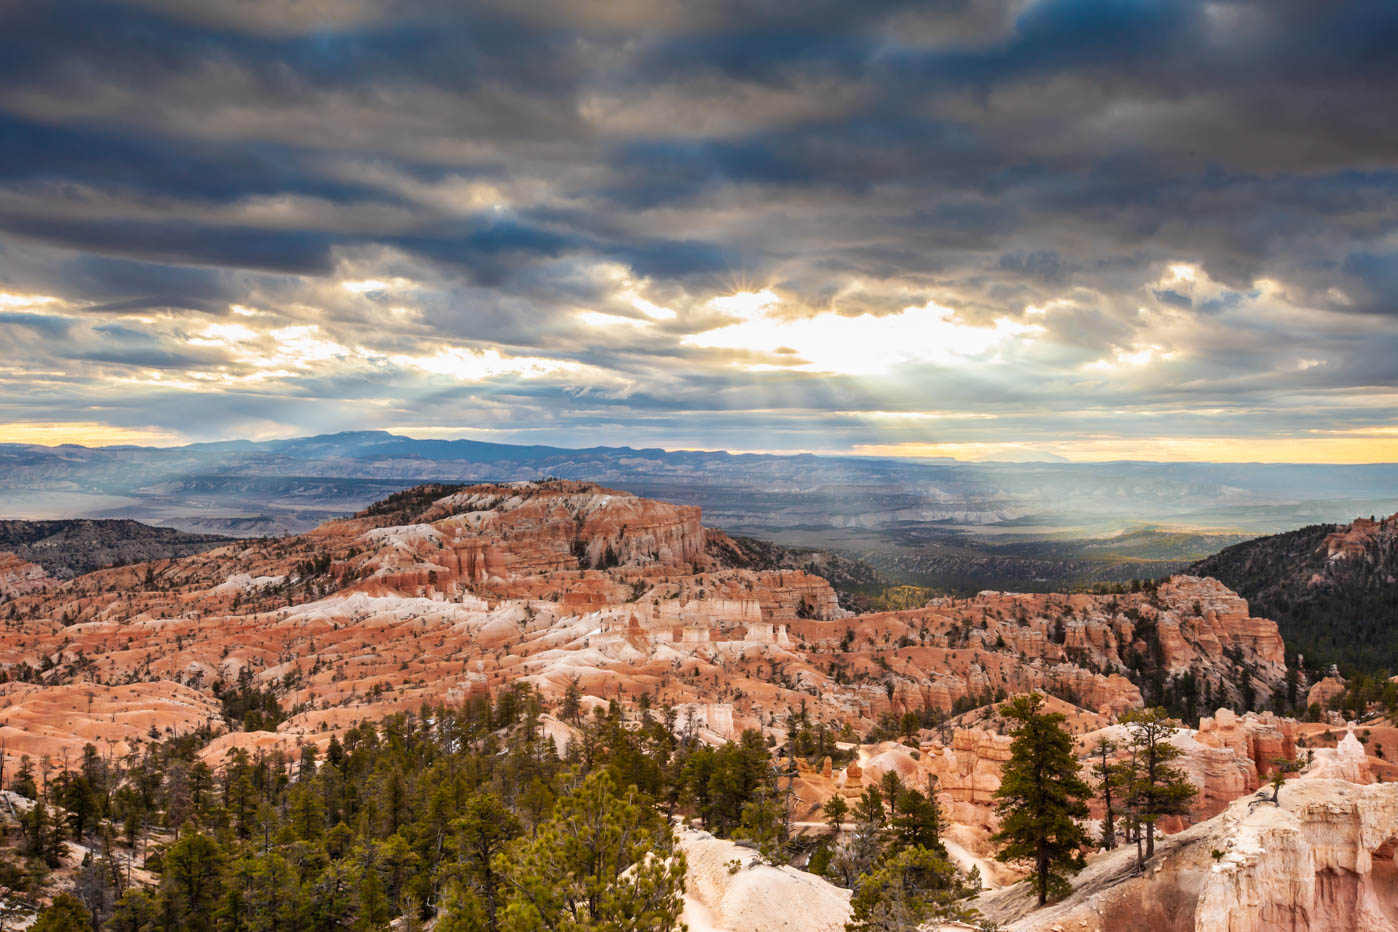 Sunrise Point on the Queens Garden Trail and Navajo Loop Trail Combination Hike #vezzaniphotography